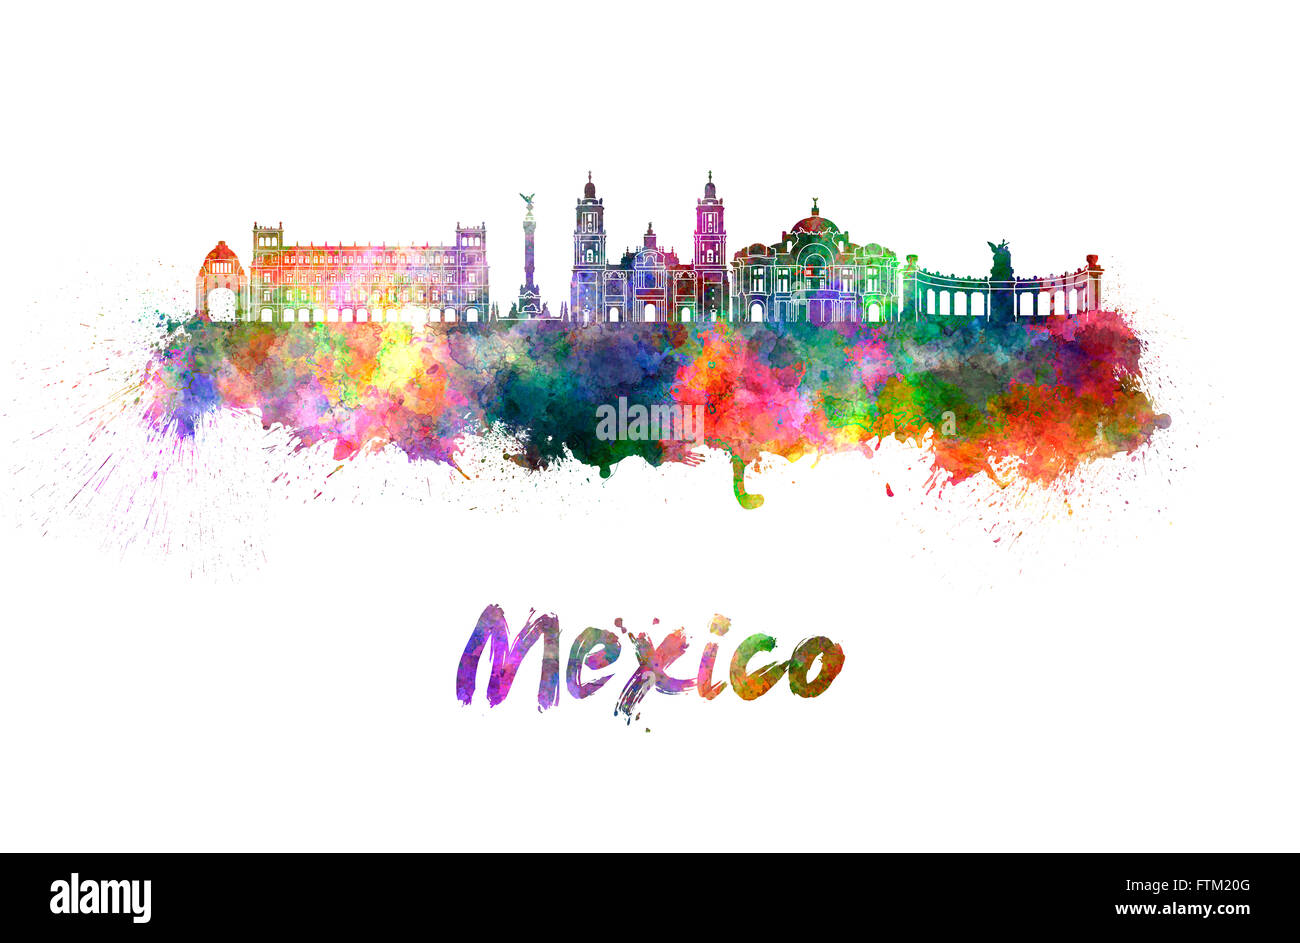 Mexico City skyline in watercolor splatters with clipping path - Stock Image